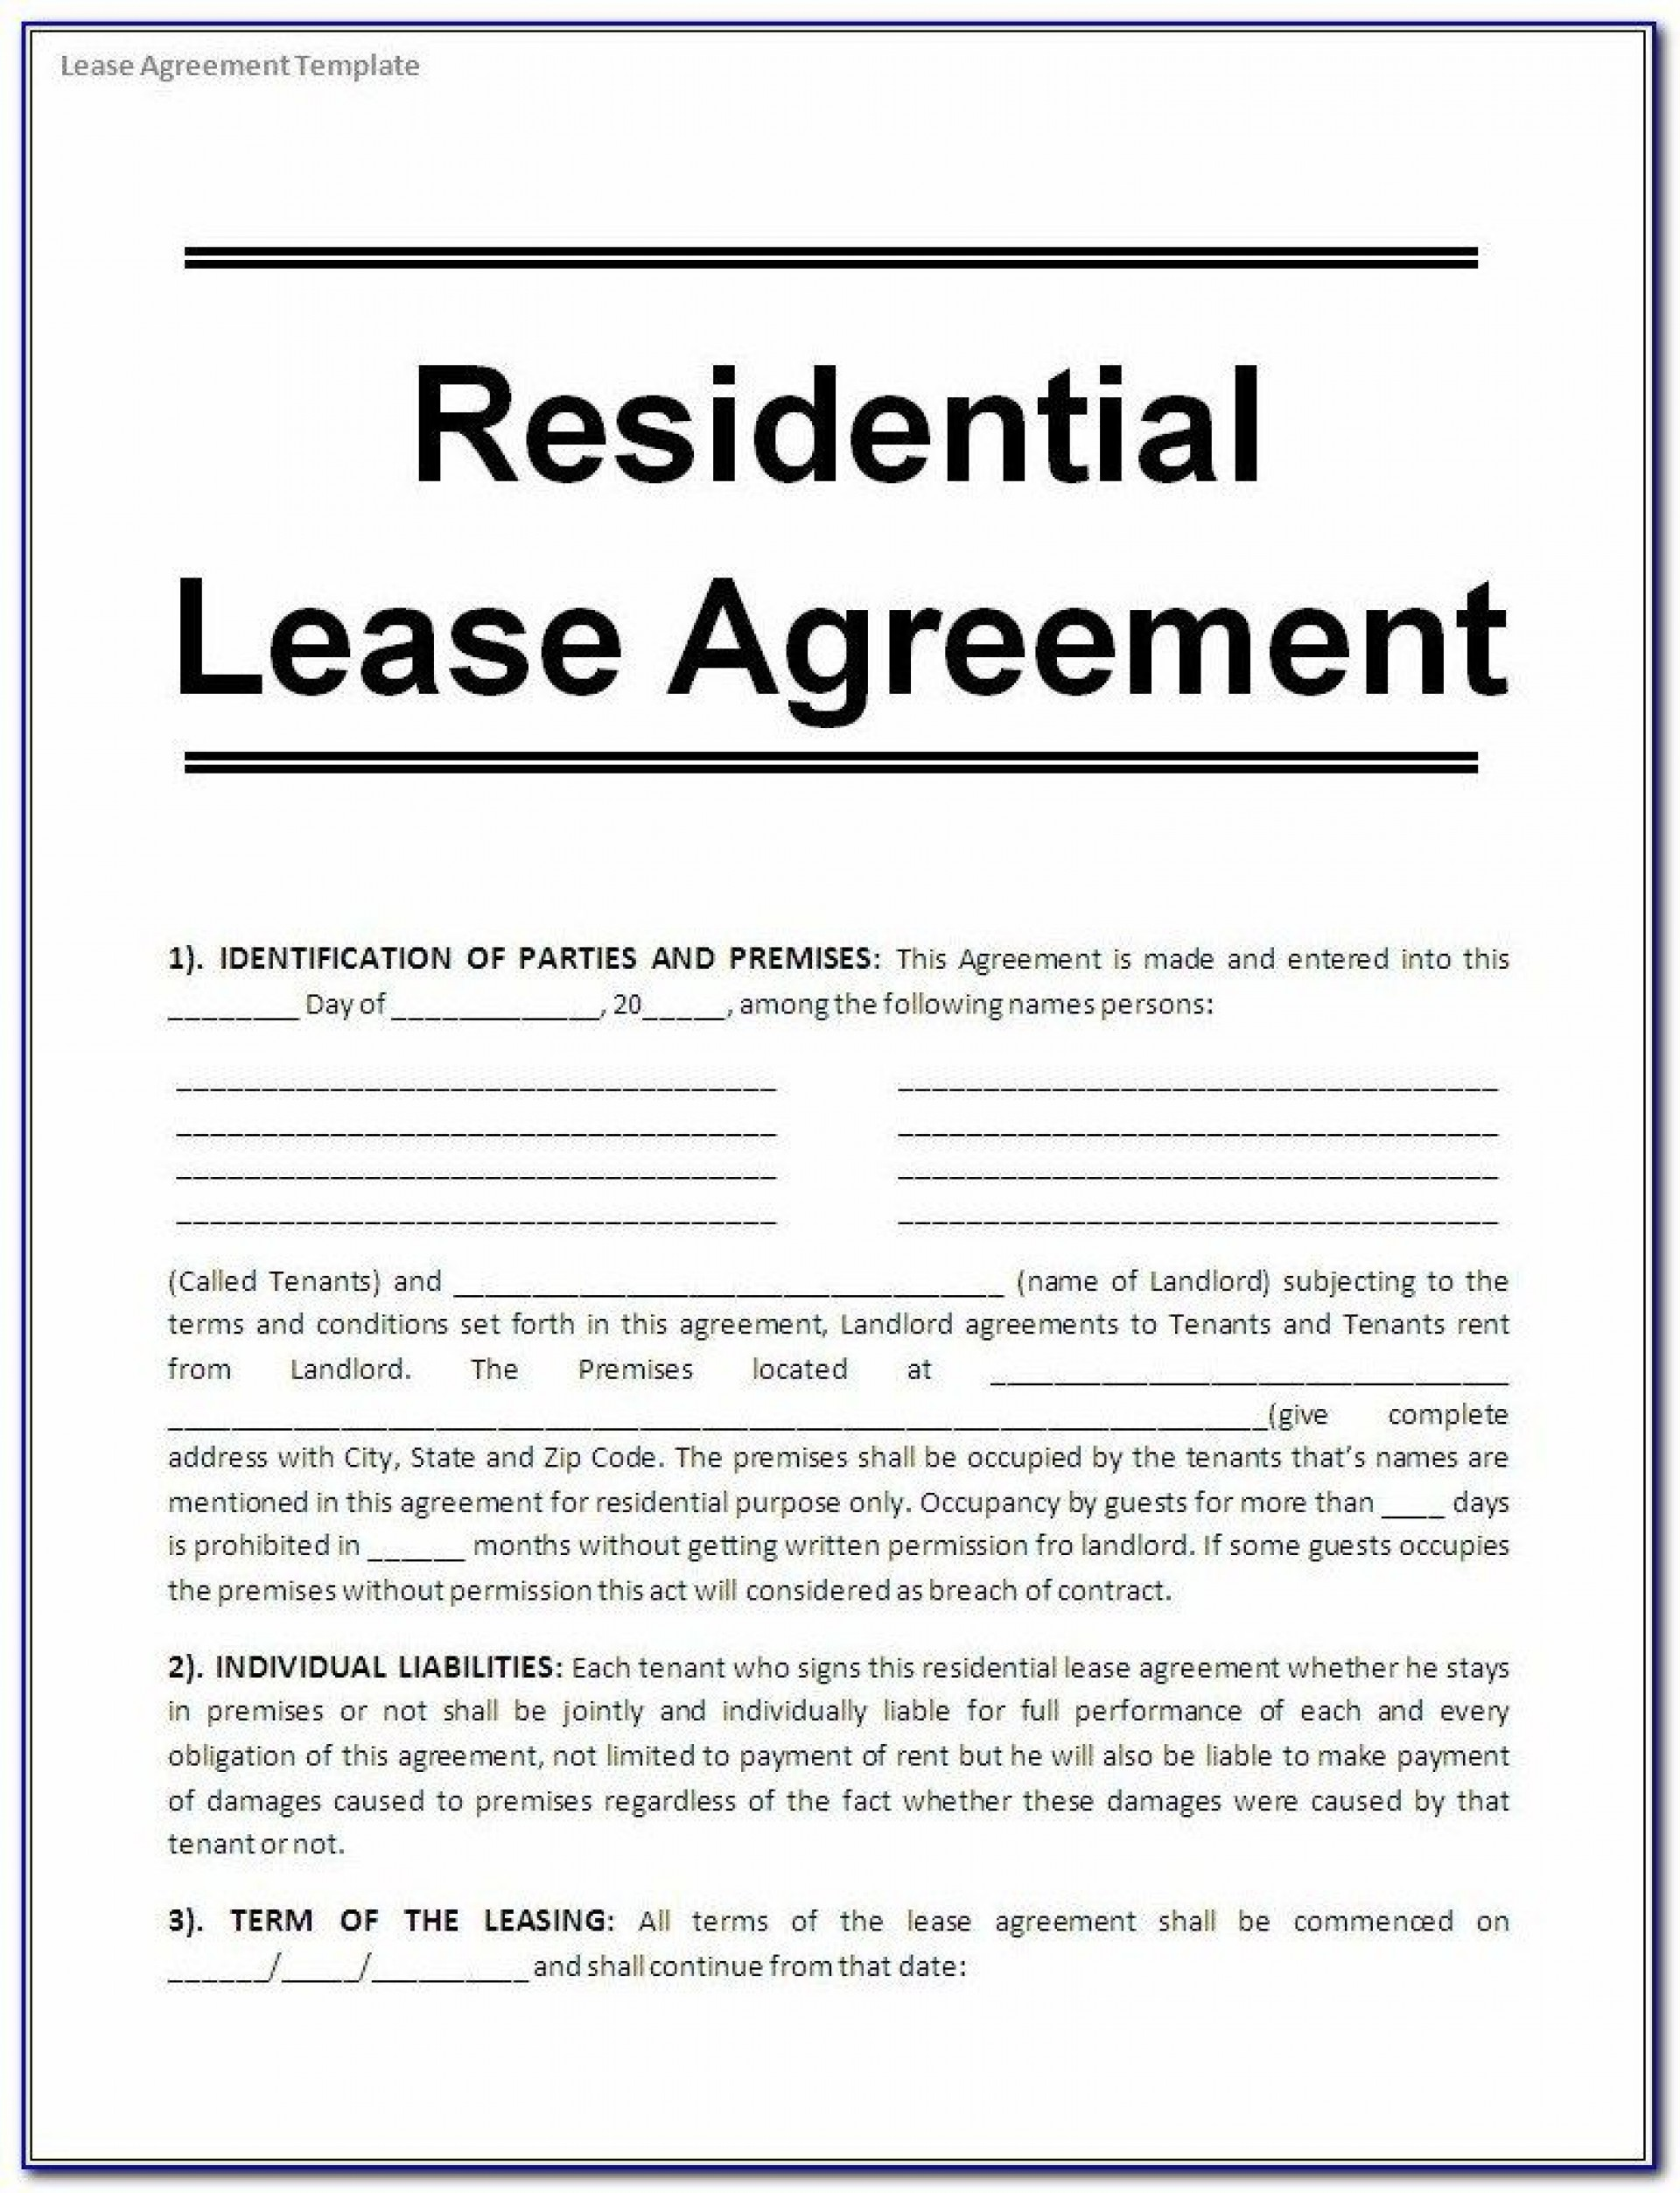 005 Wonderful Lease Agreement Template Word South Africa Photo  Free Simple Residential Commercial Document1920